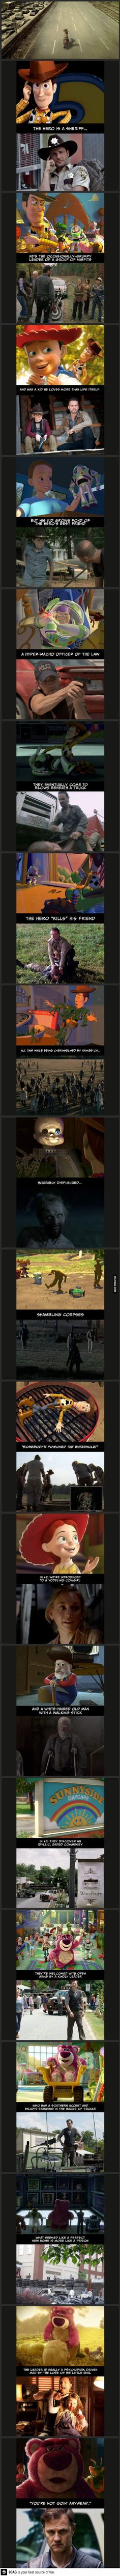 Toy story Vs Walking dead. Mind blow!